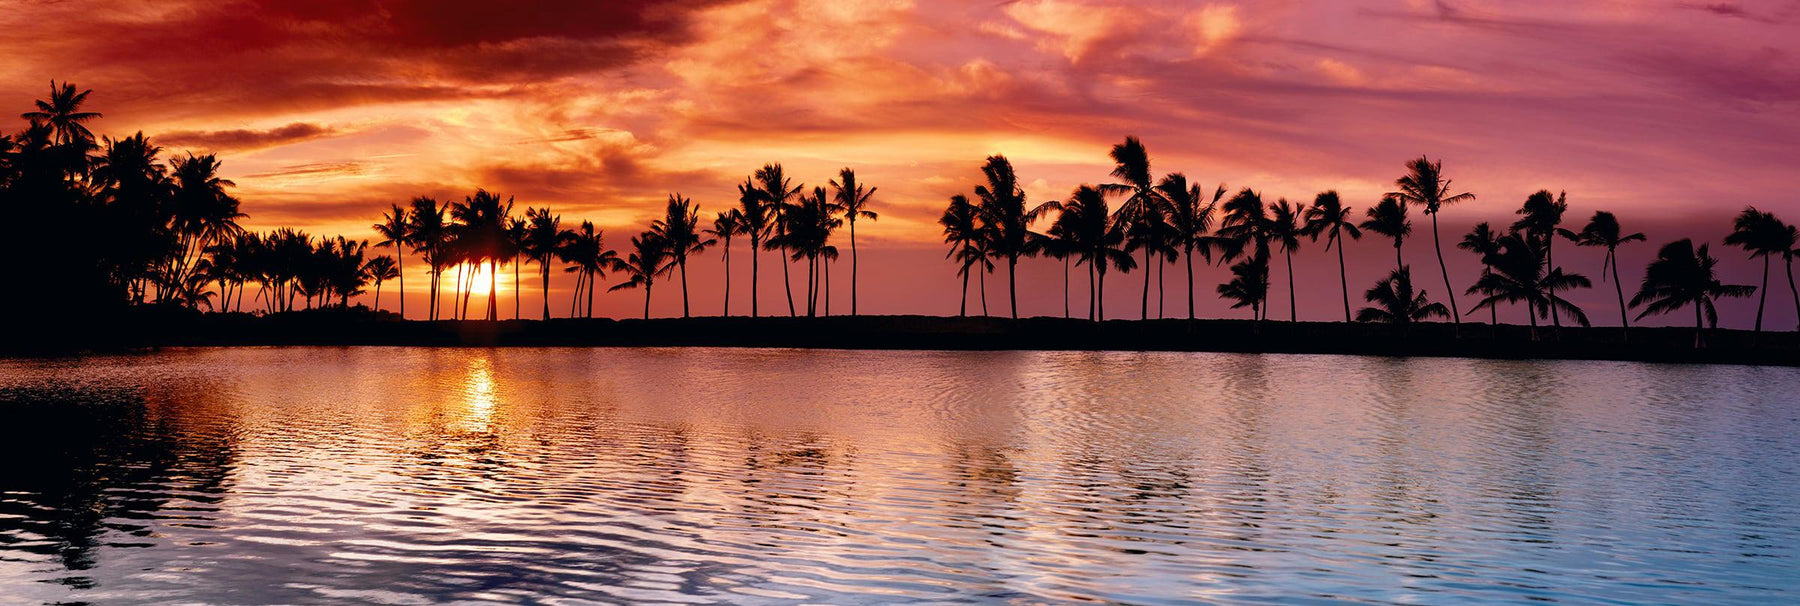 Setting sun and palm tree silhouettes reflecting off an inlet along the shore of The Big Island Hawaii